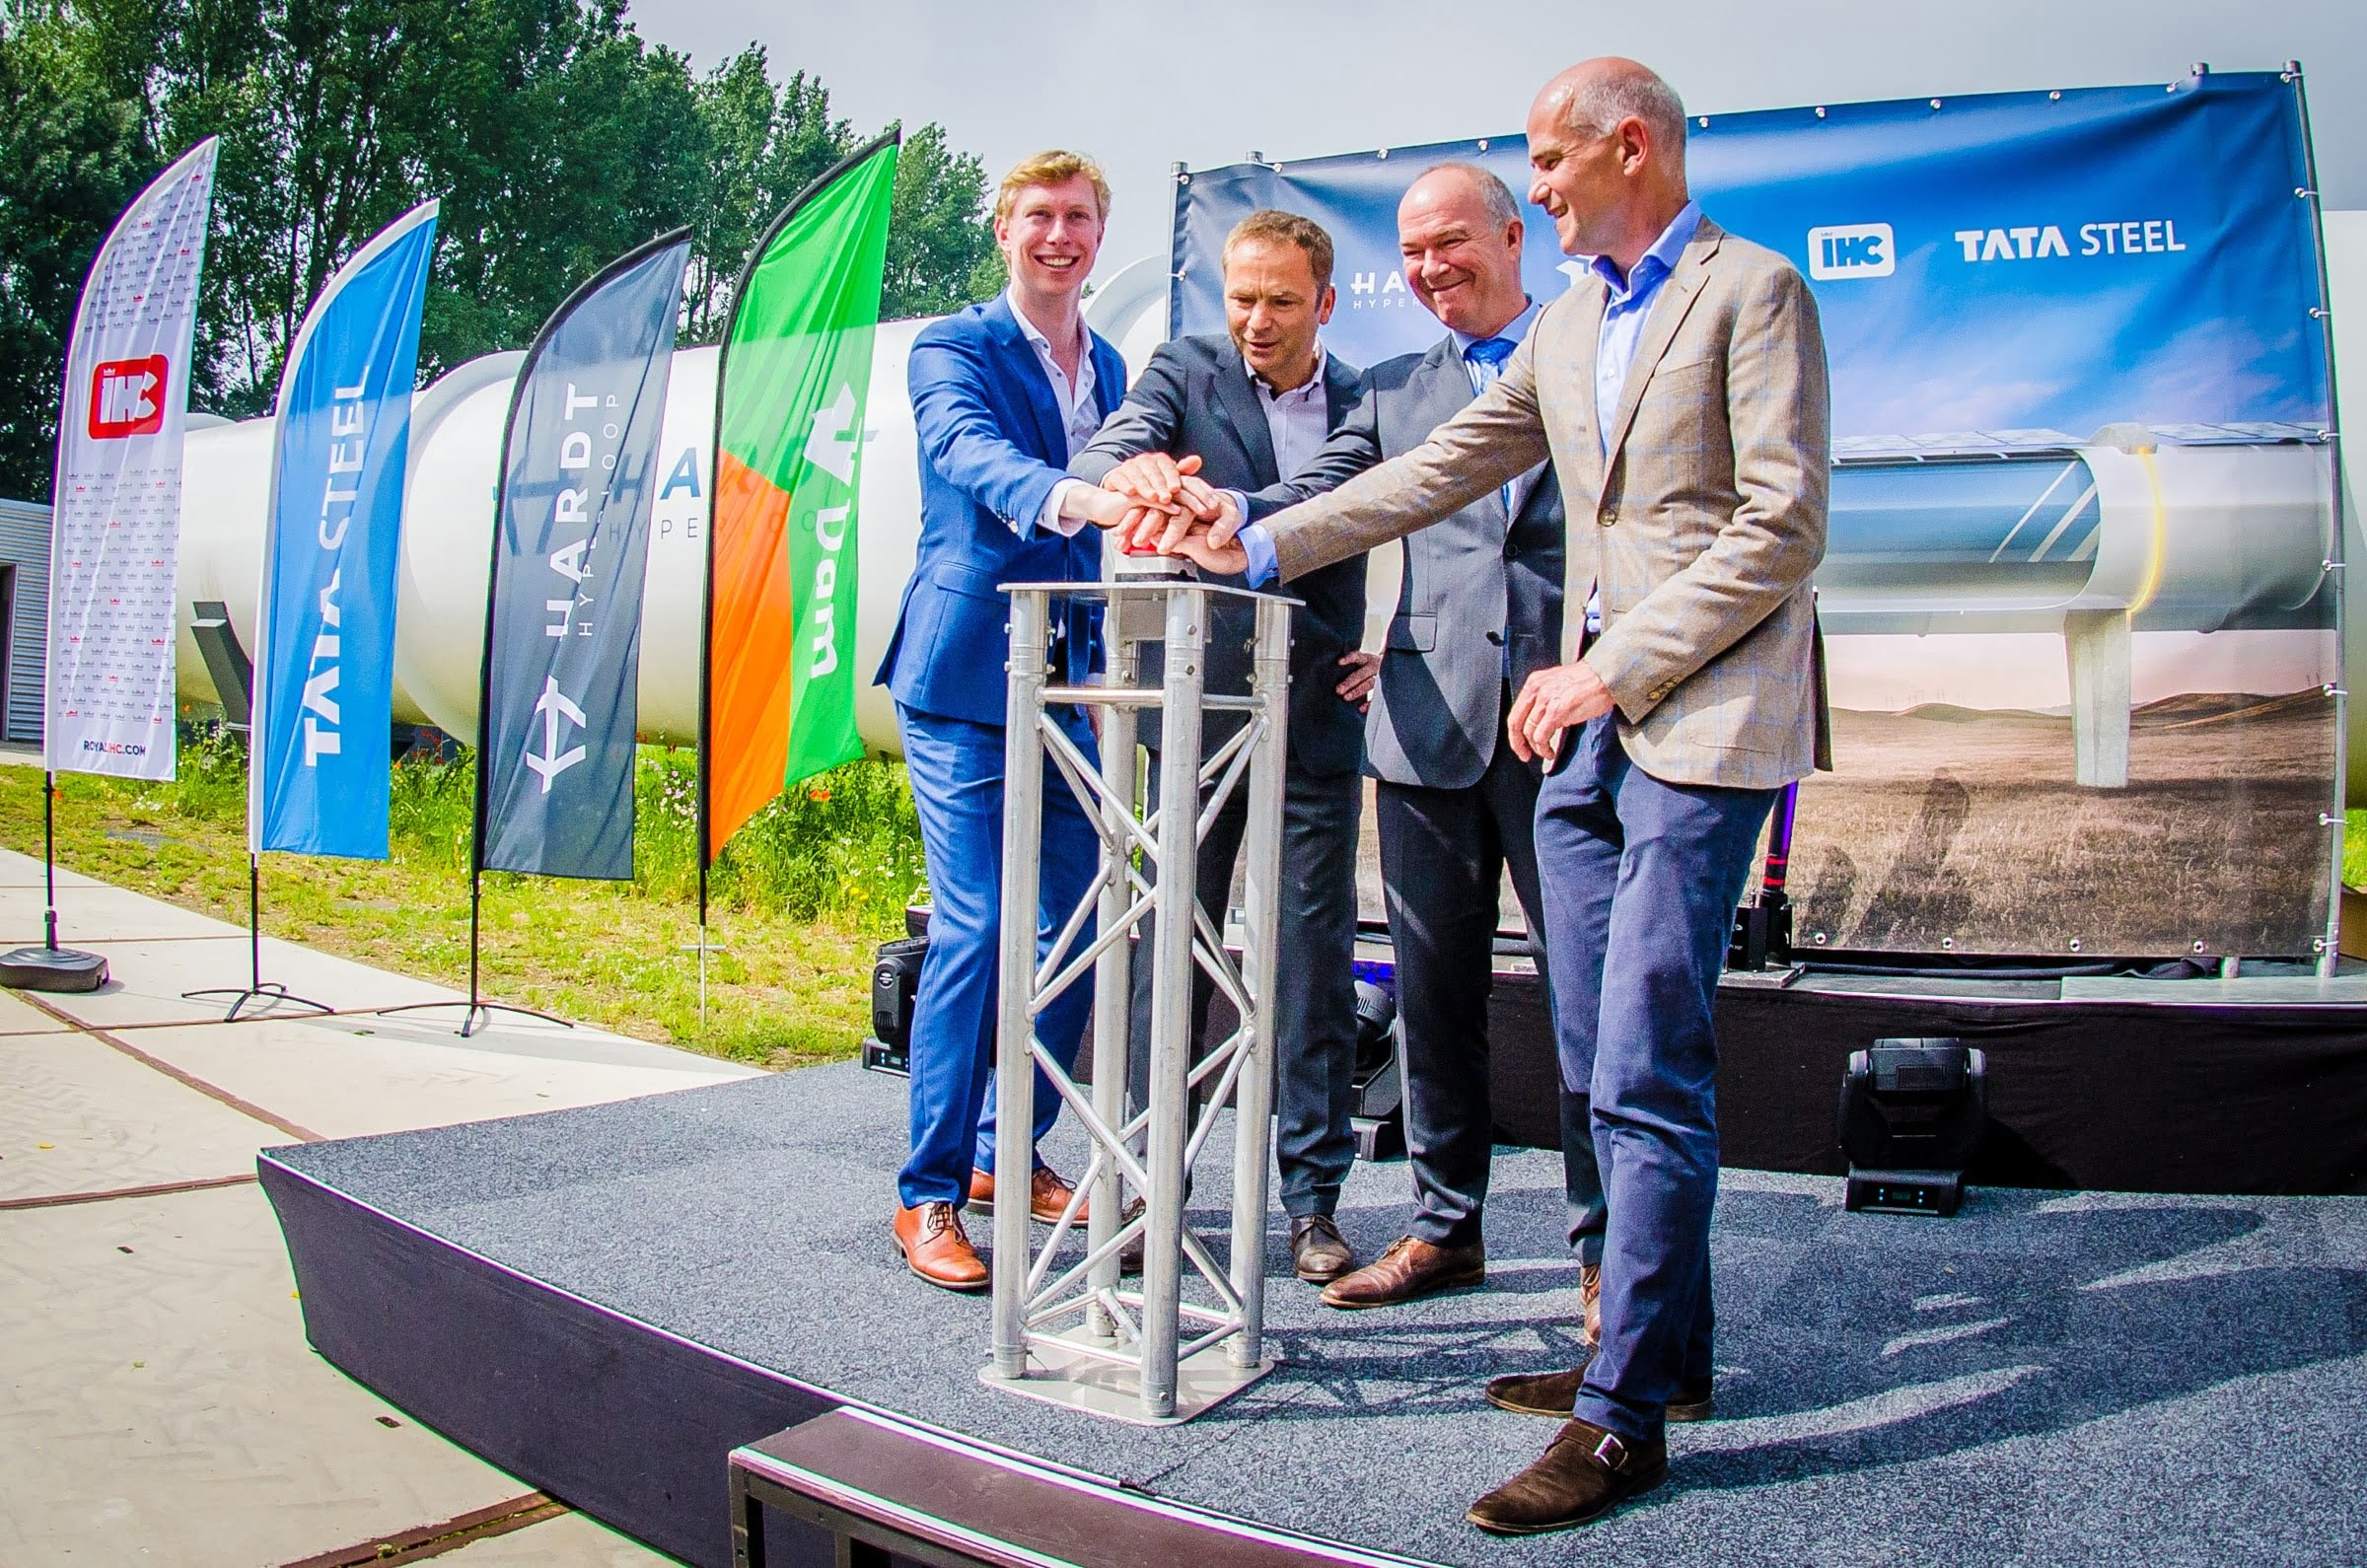 Tata Steel, Royal IHC and BAM partner with Delft startup Hardt Hyperloop